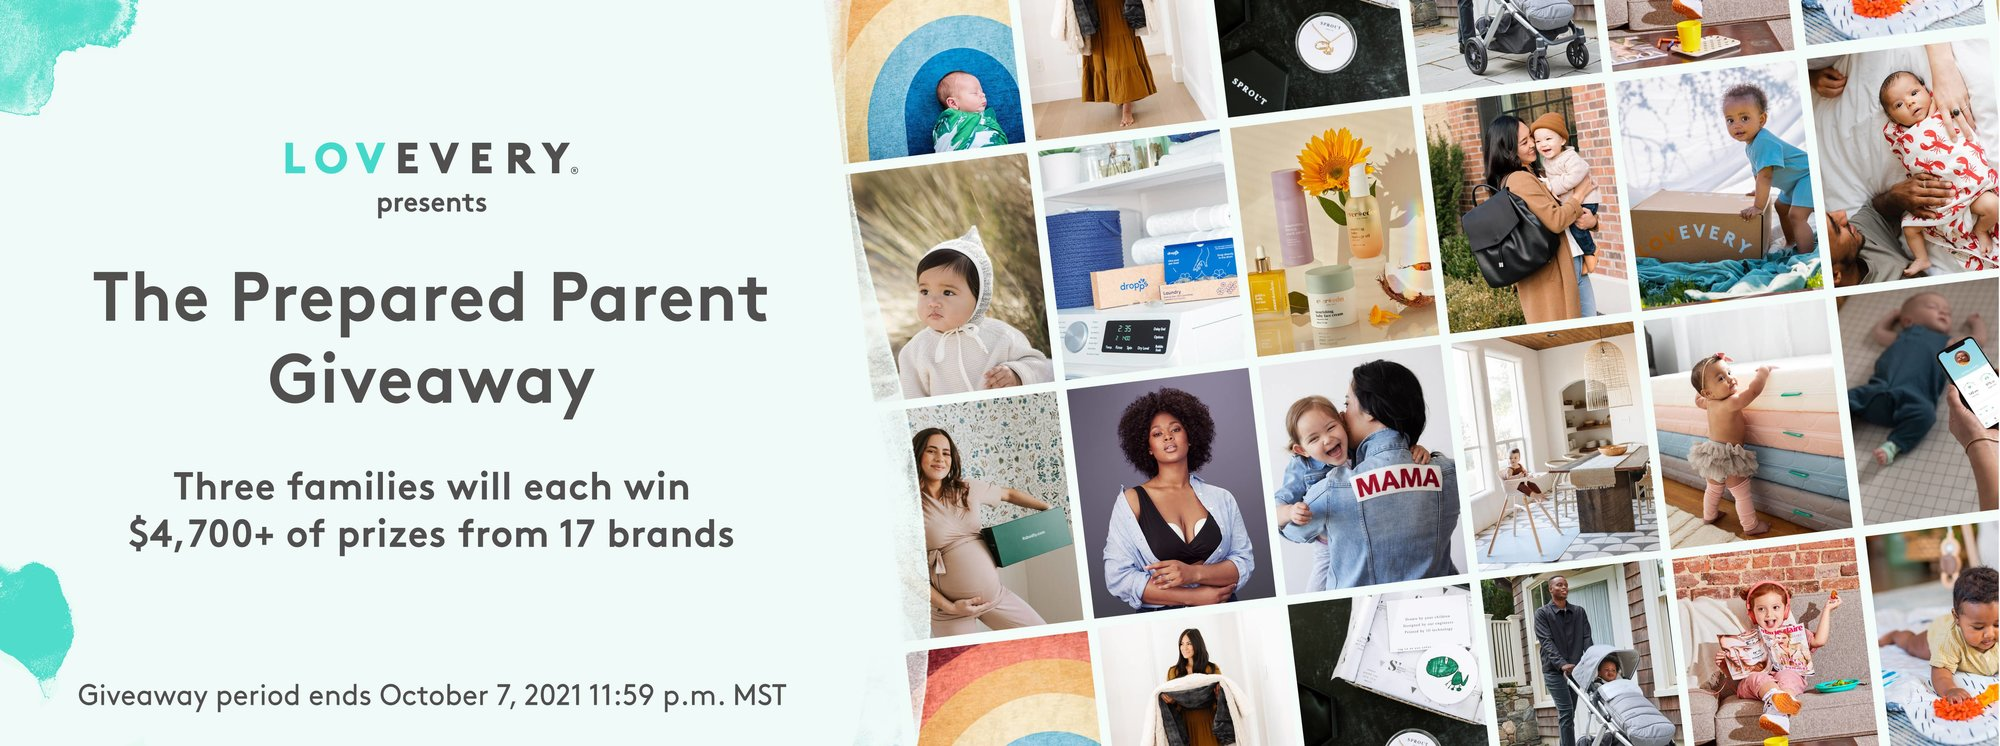 Prepared Parent Giveaway banner with pictures of all the prizes